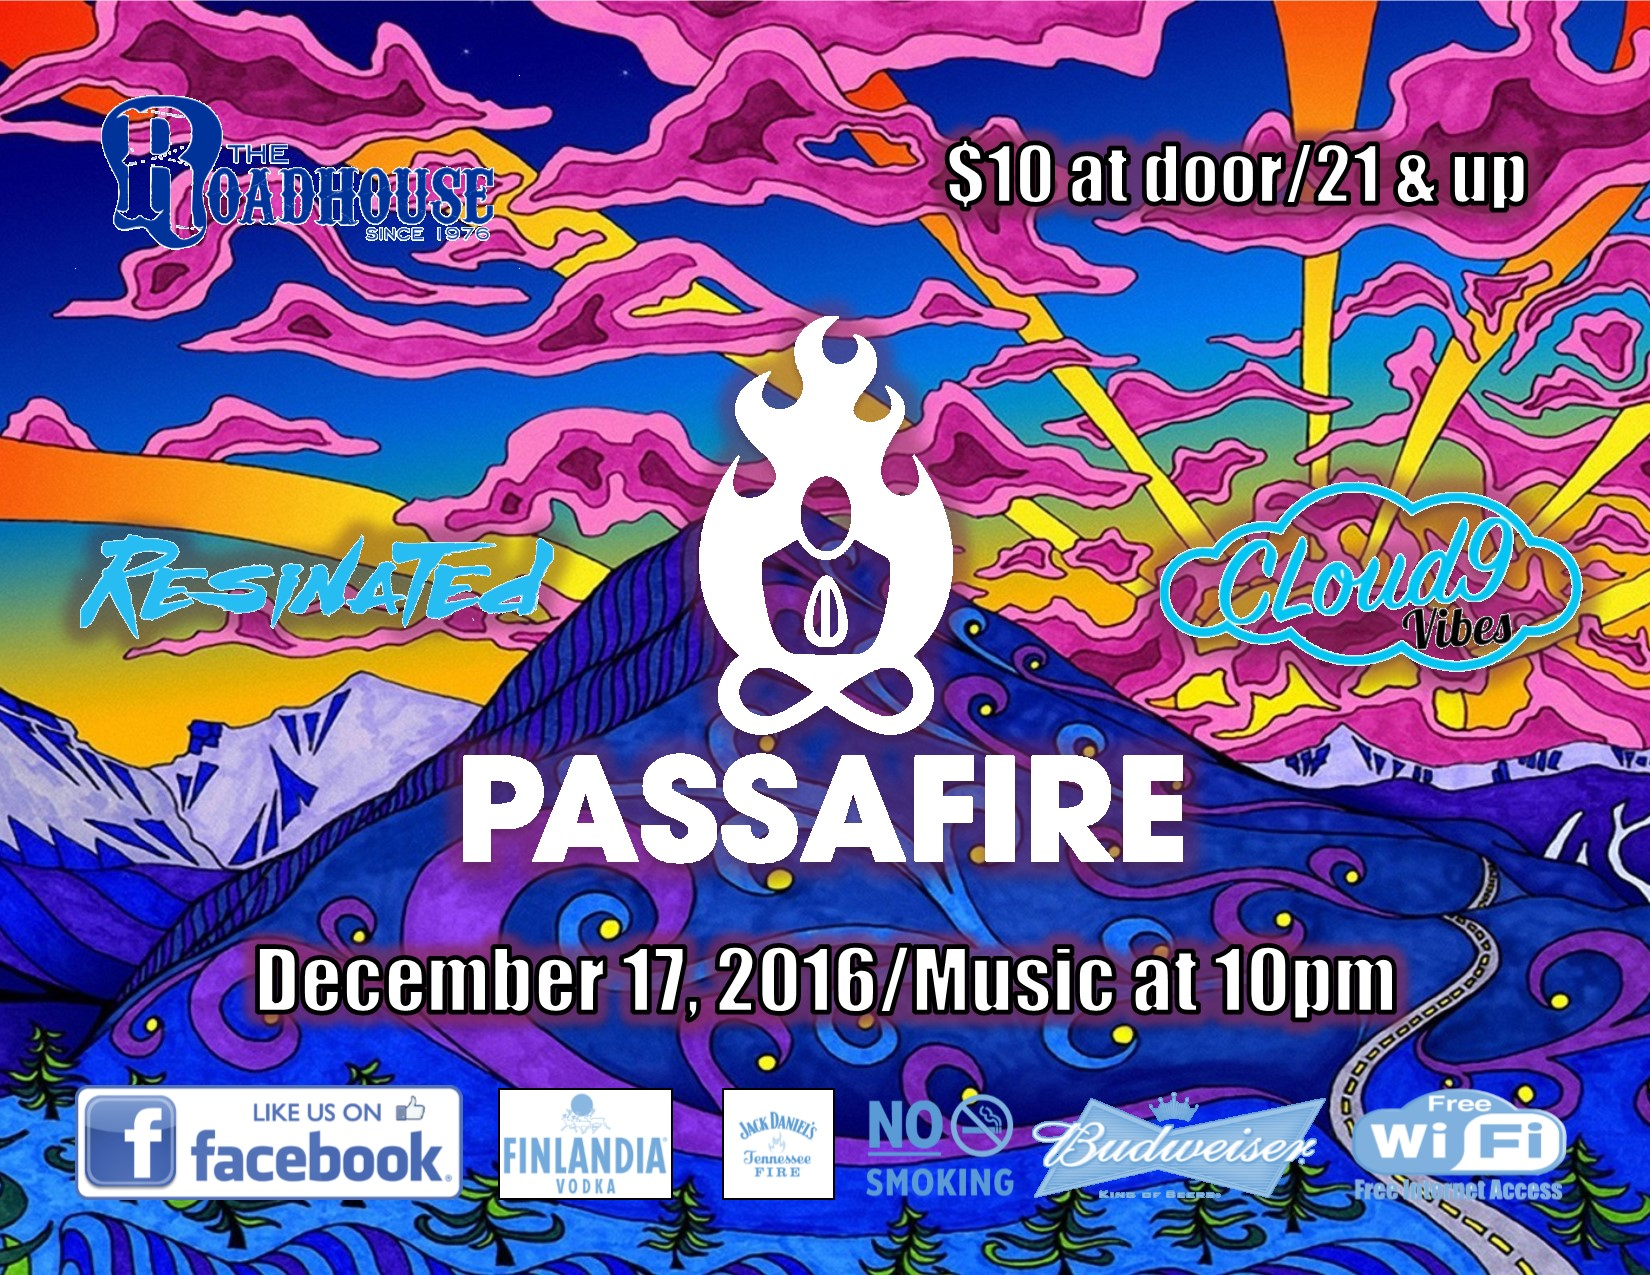 Passafire at The Roadhouse